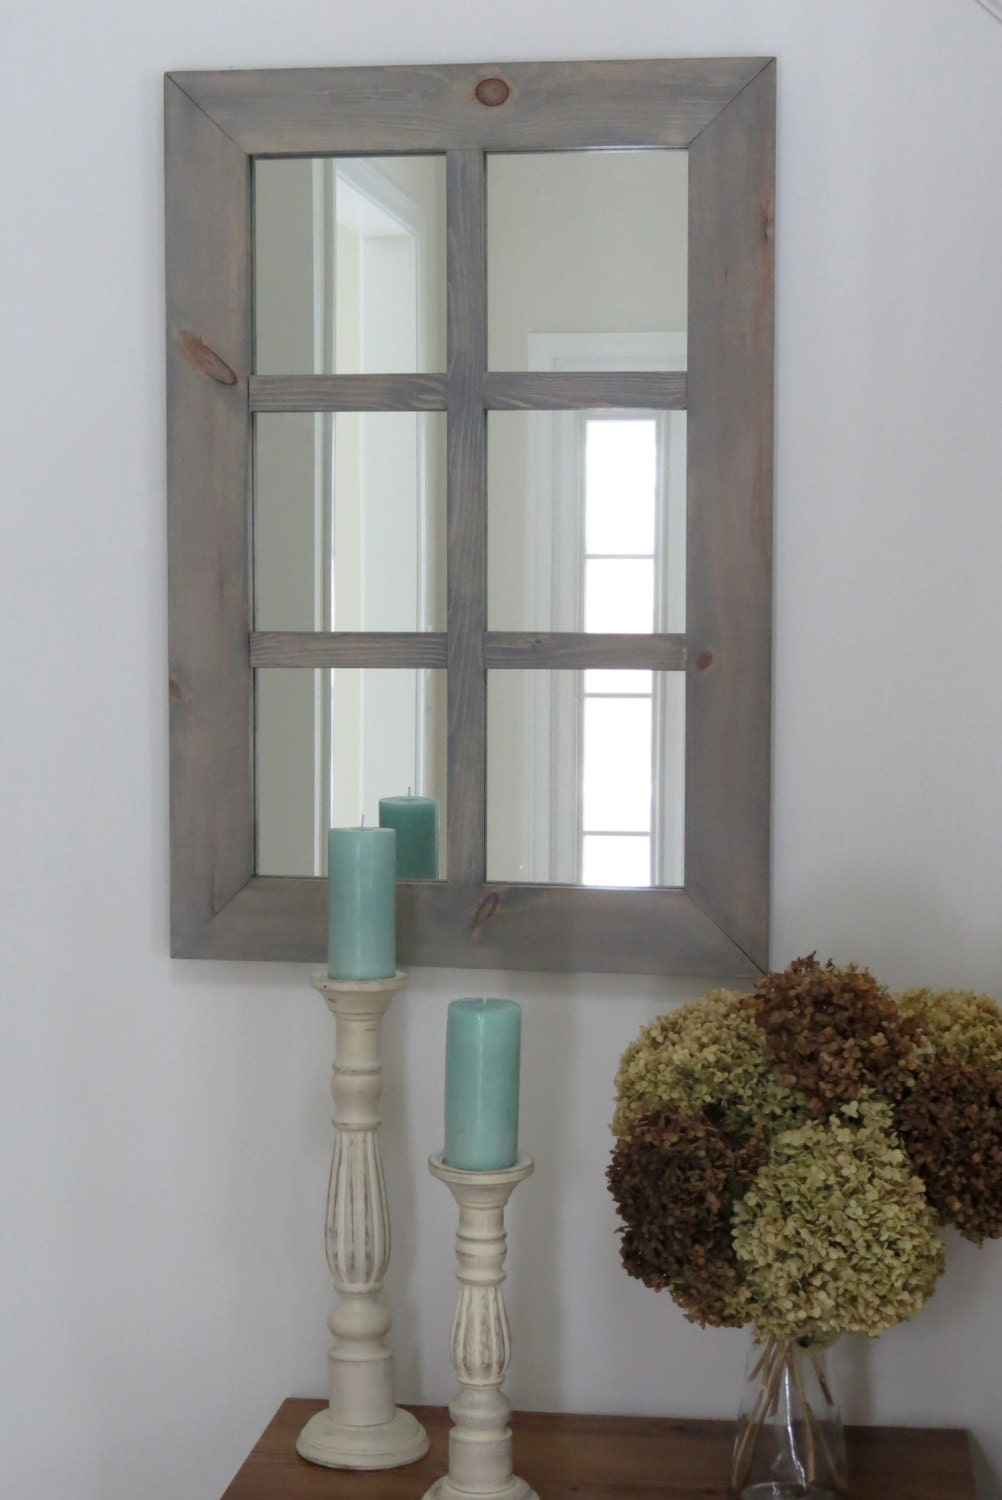 Rustic window pane mirror Window pane mirror